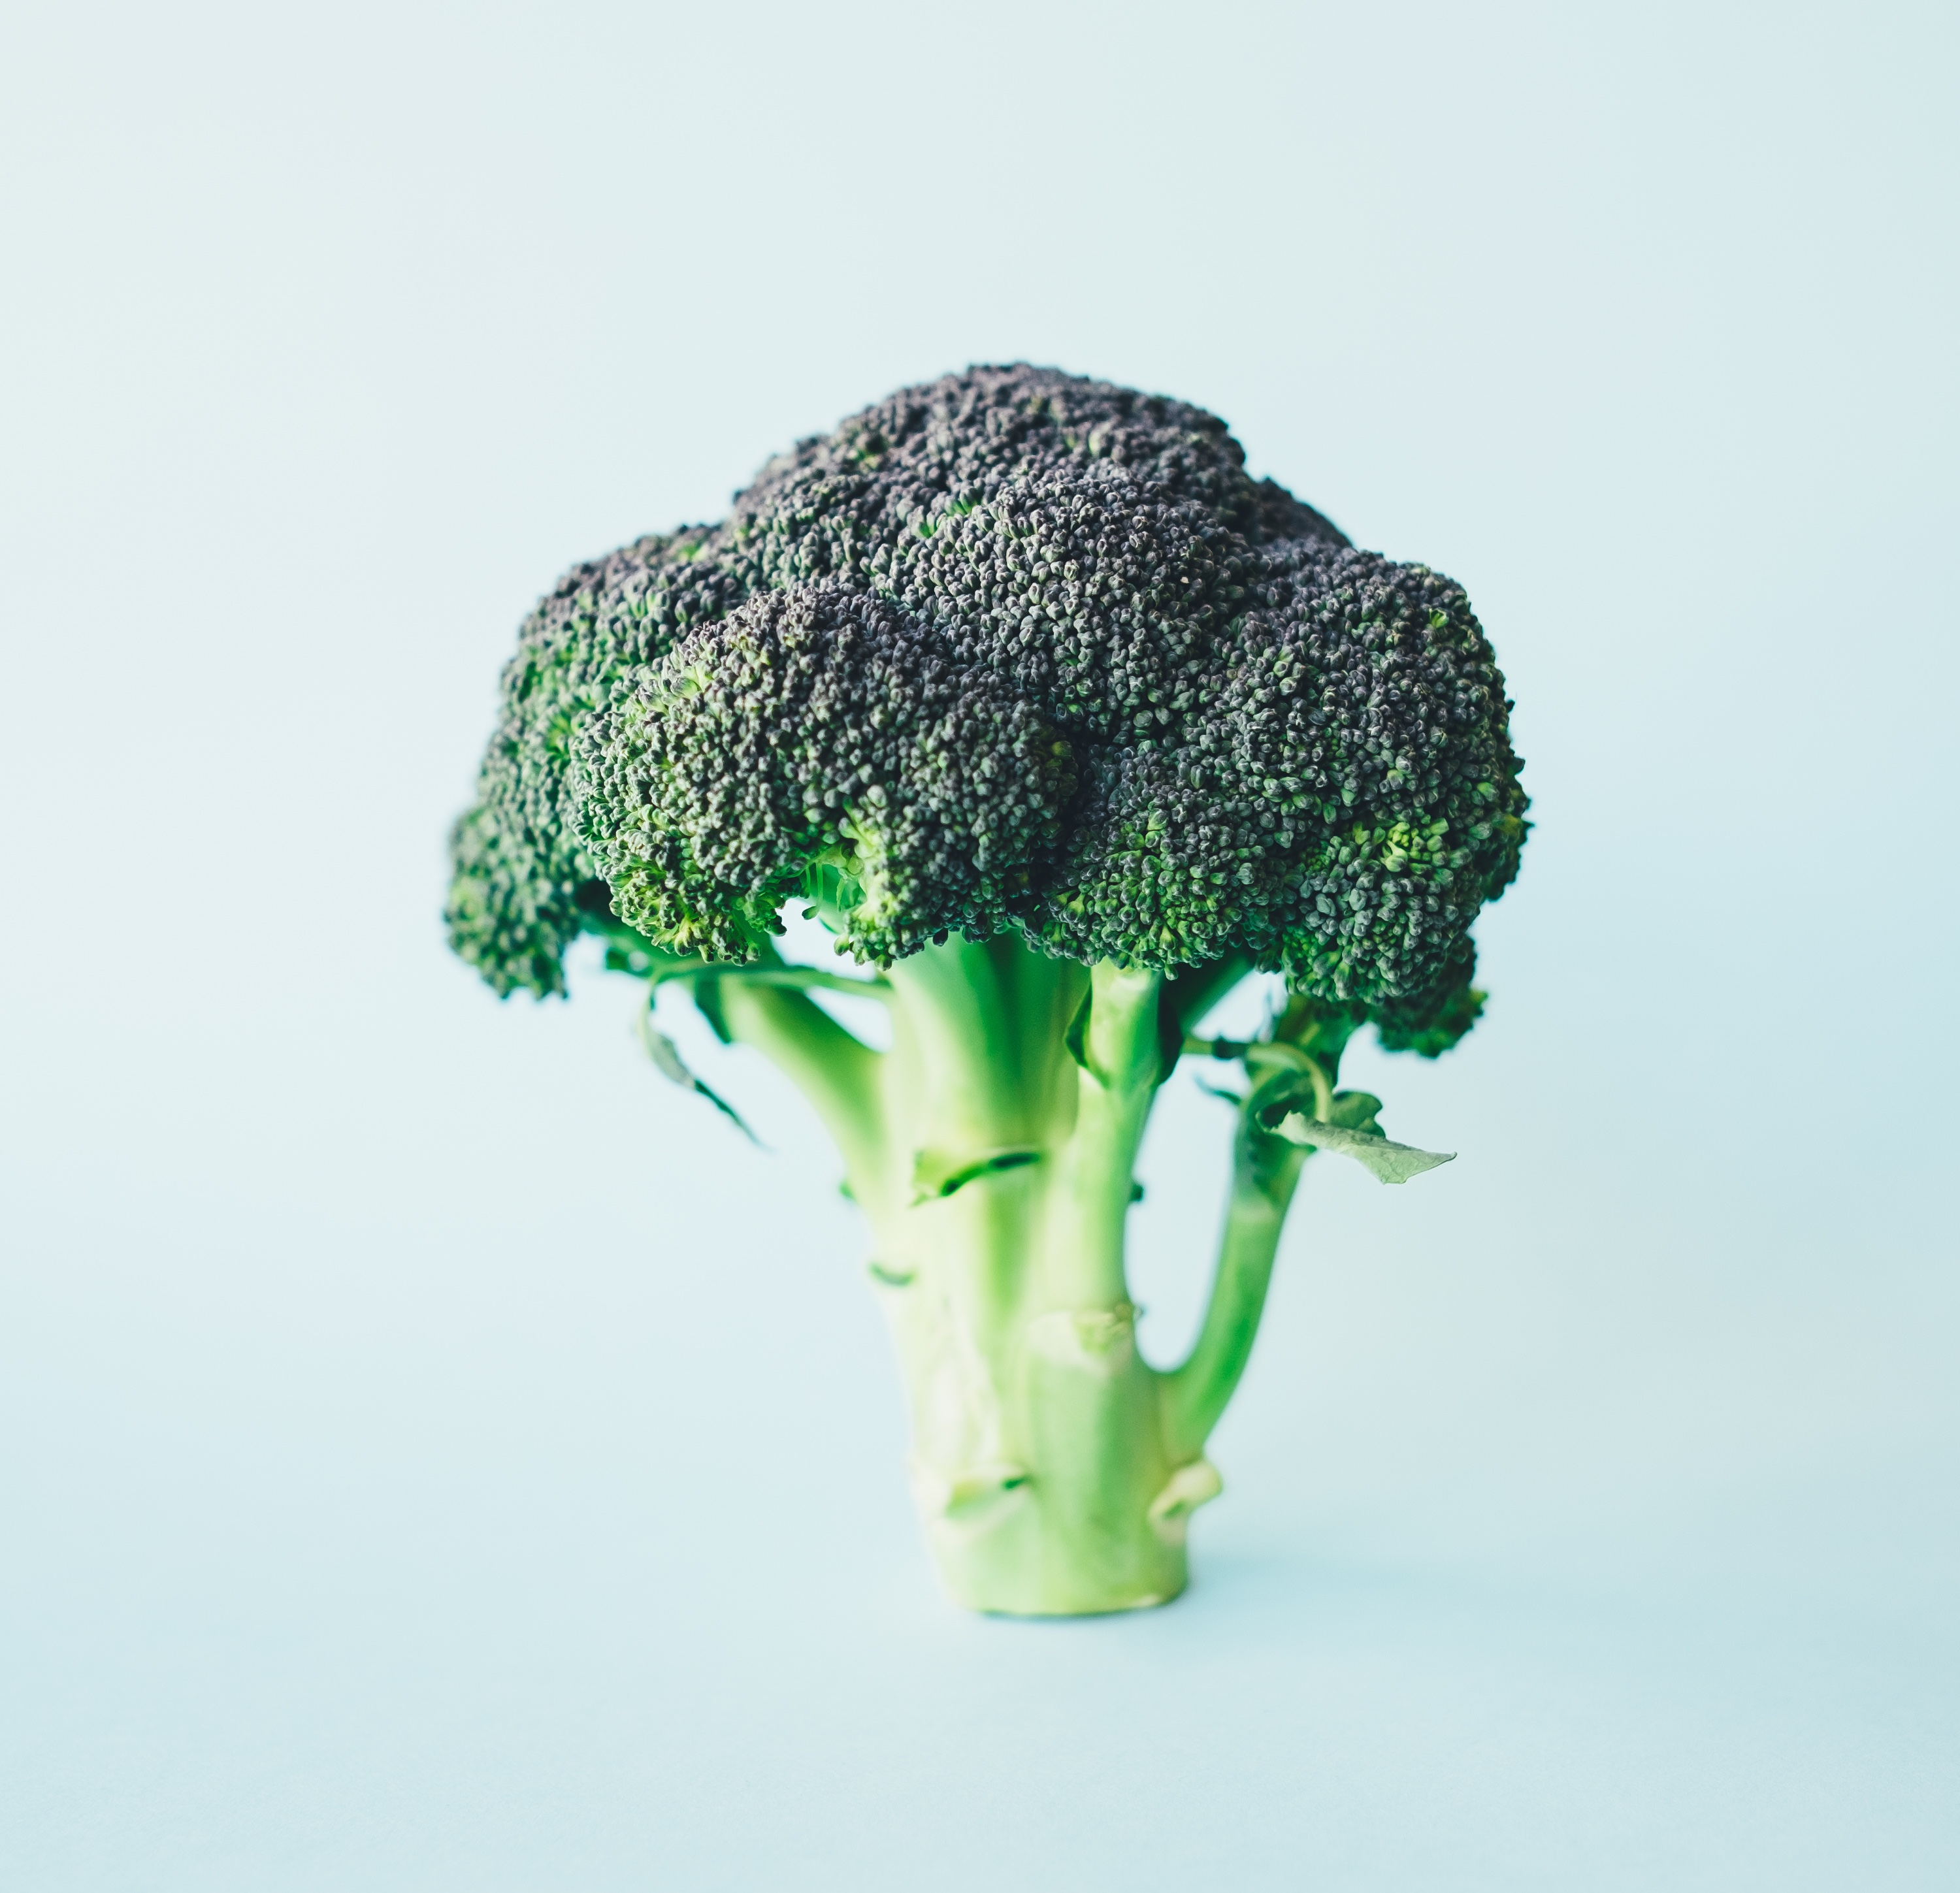 Broccoli for patients with type 2 diabetes